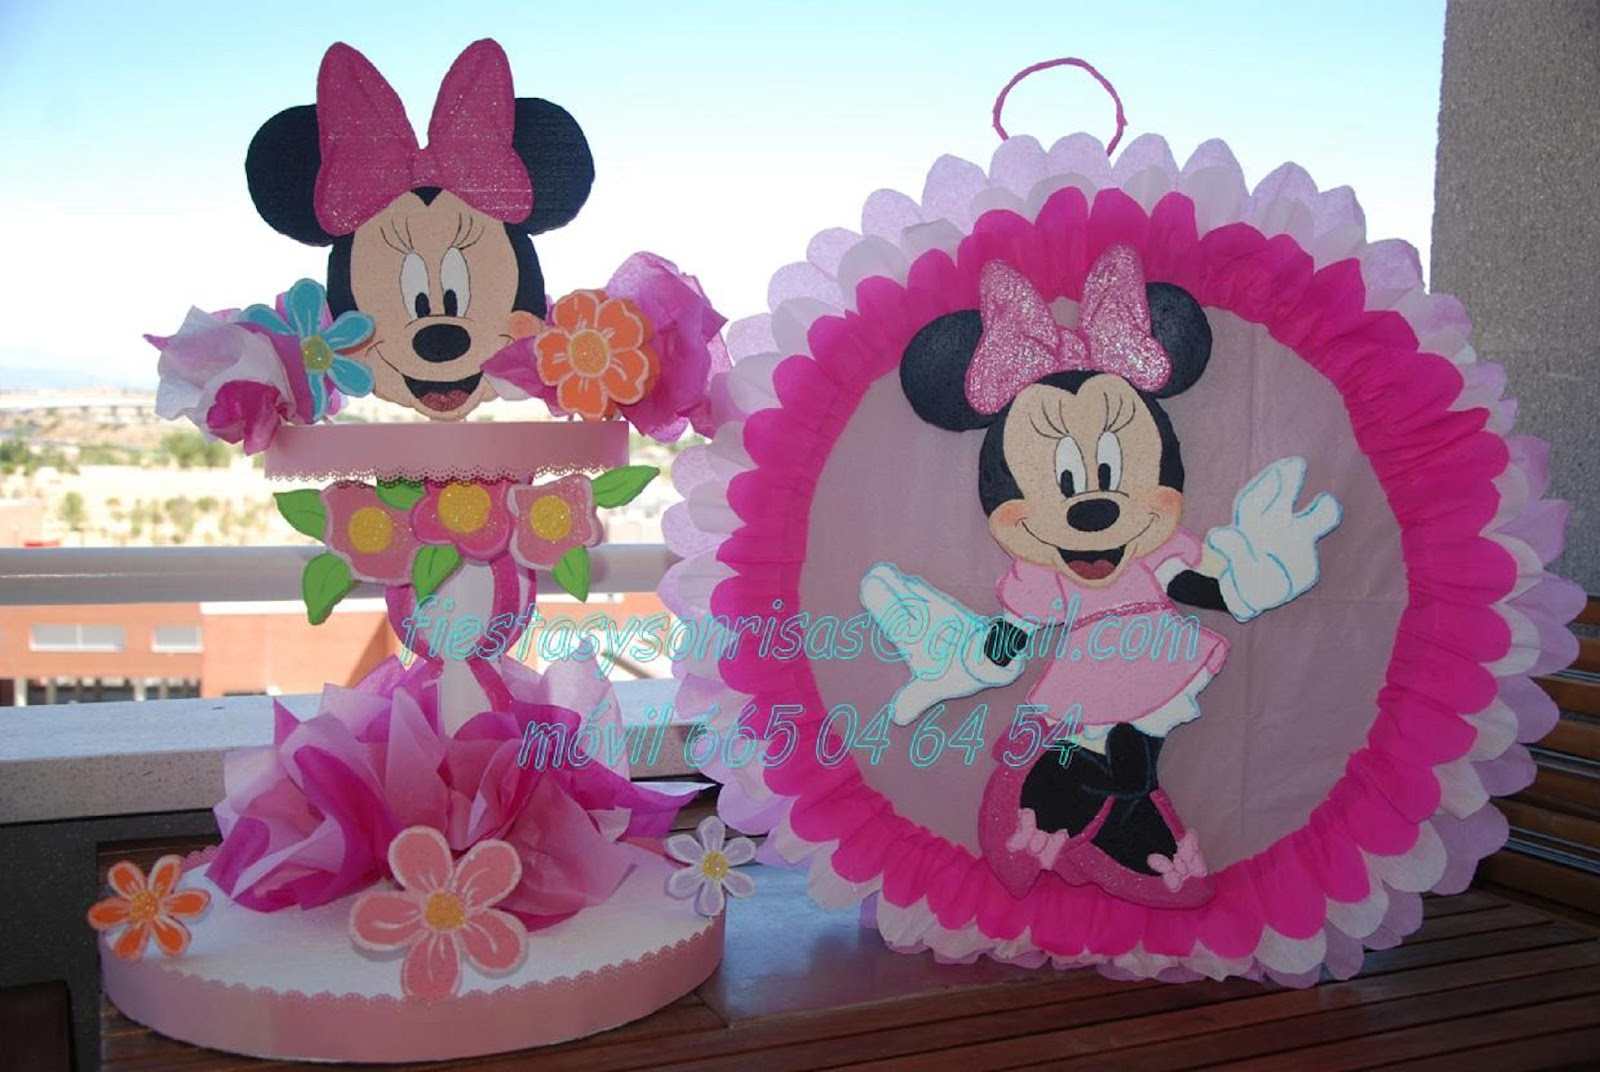 Minnie Decoraciones Para Fiestas ~ Decoraciones Para Fiestas De Minnie Mouse